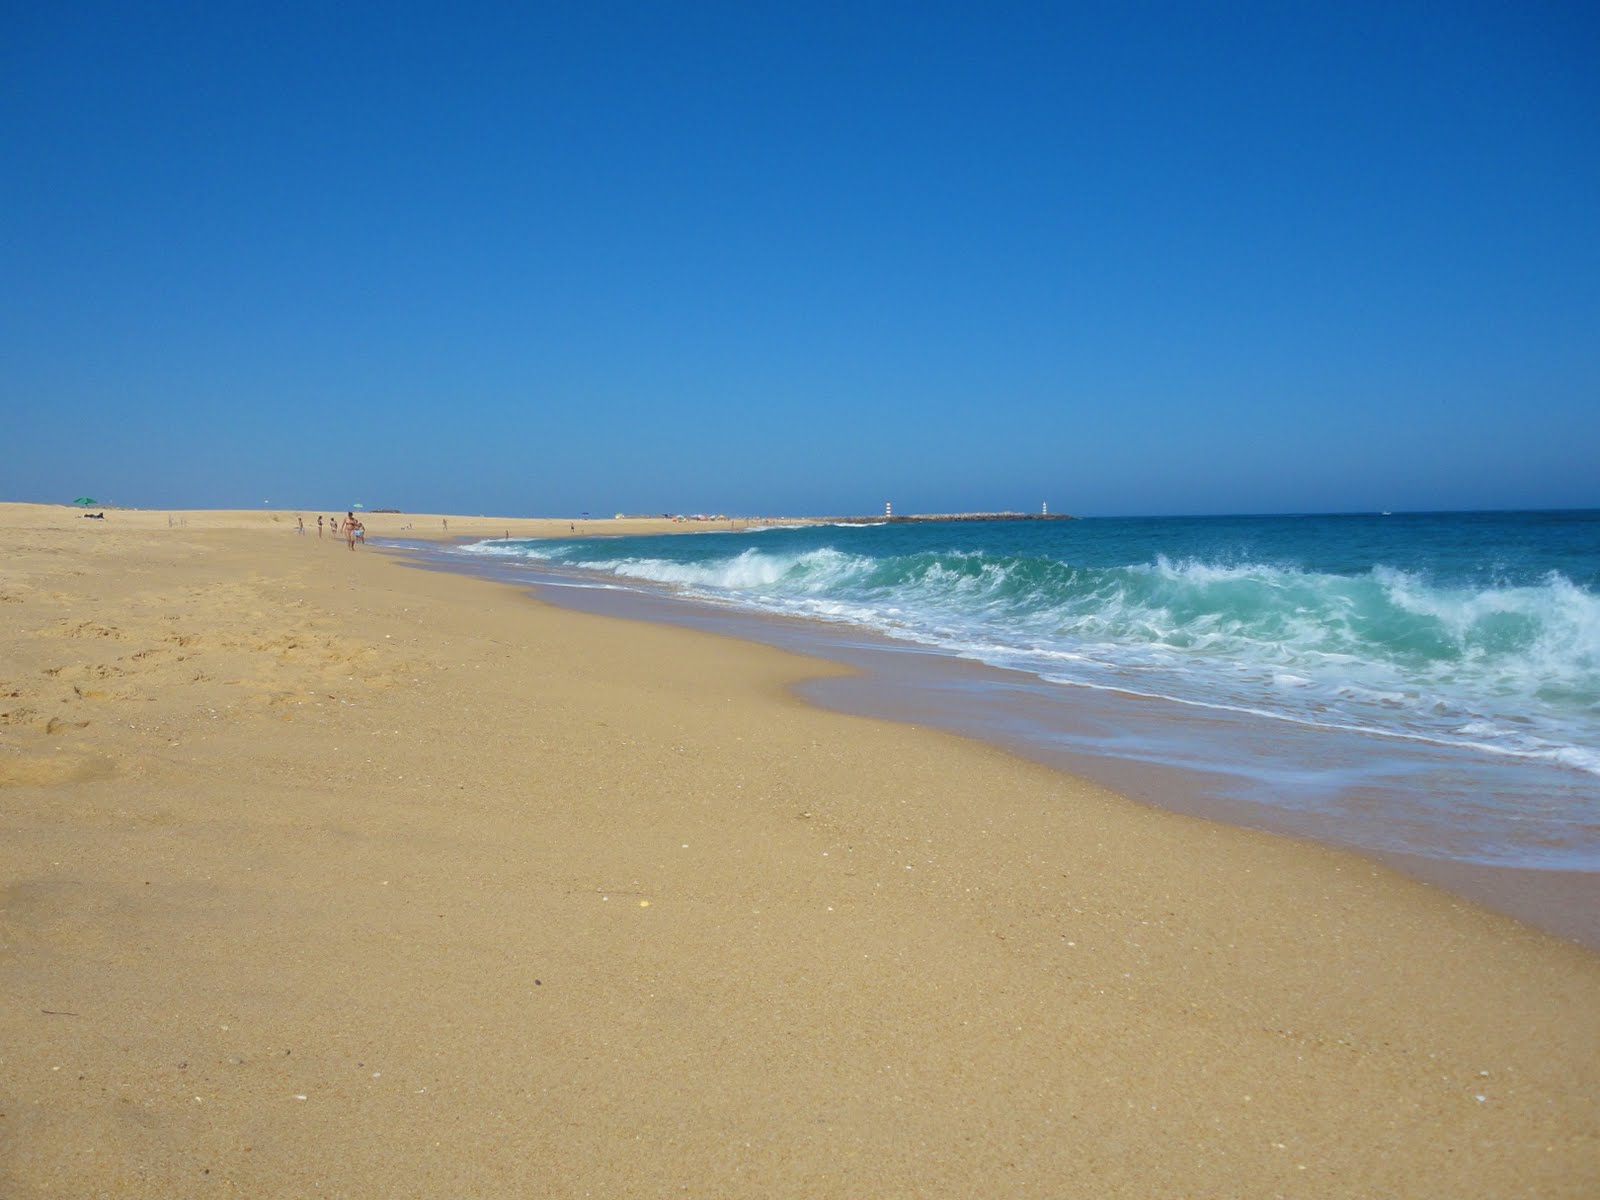 and save image to download the hamptons beach new york wallpaper